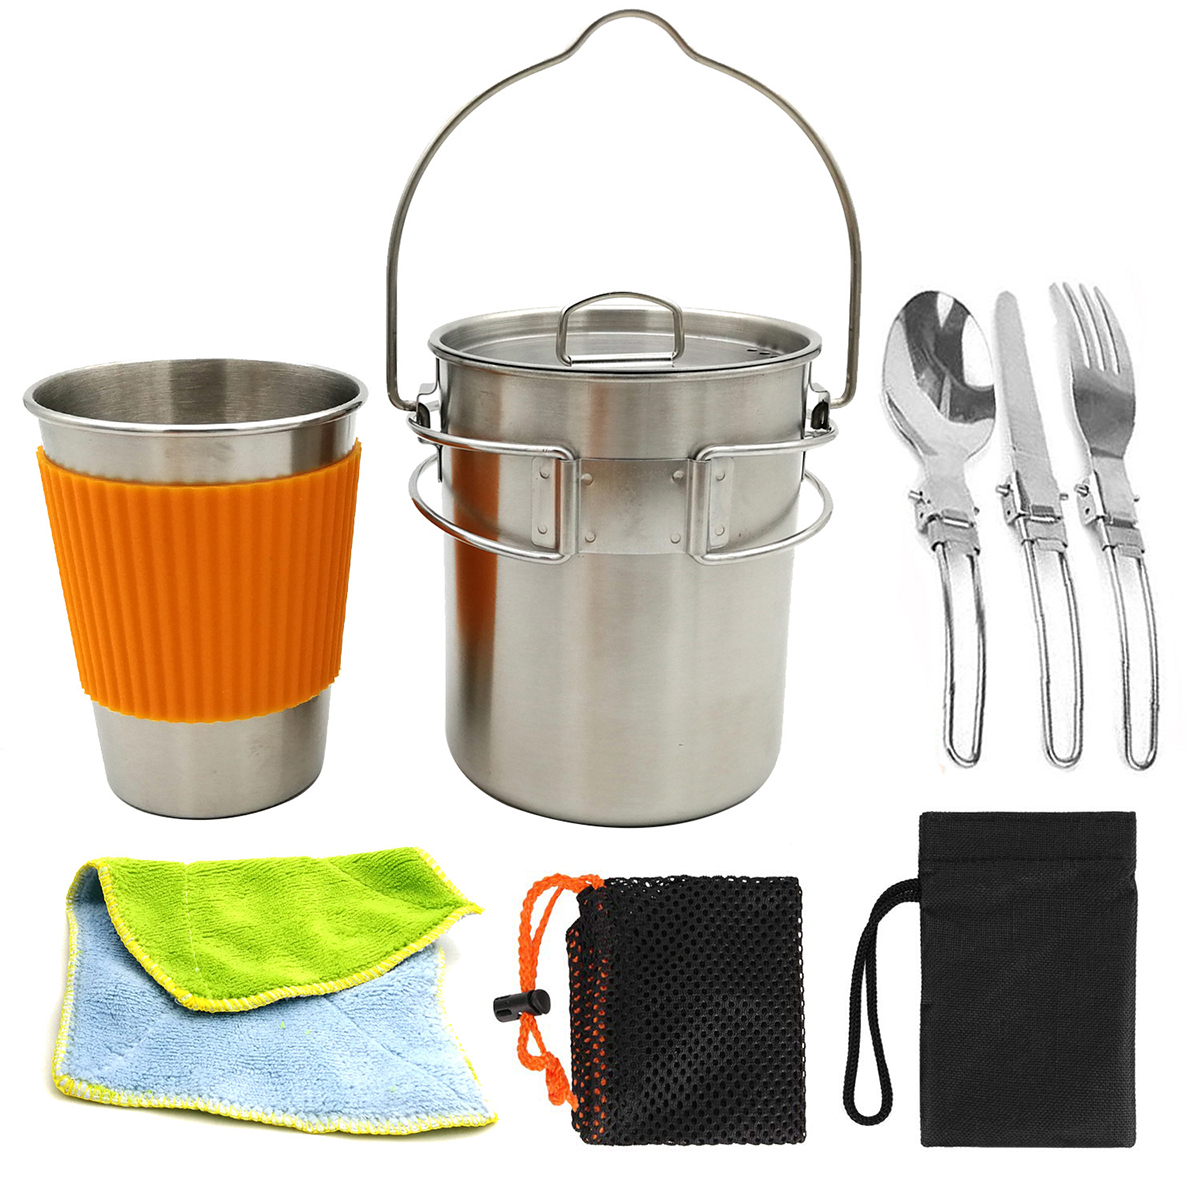 Camping Cookware Kit Stainless Steel Camping Pot with Hanger Water Cup with Protector Fork Spoon Knife Accessory for Picnic